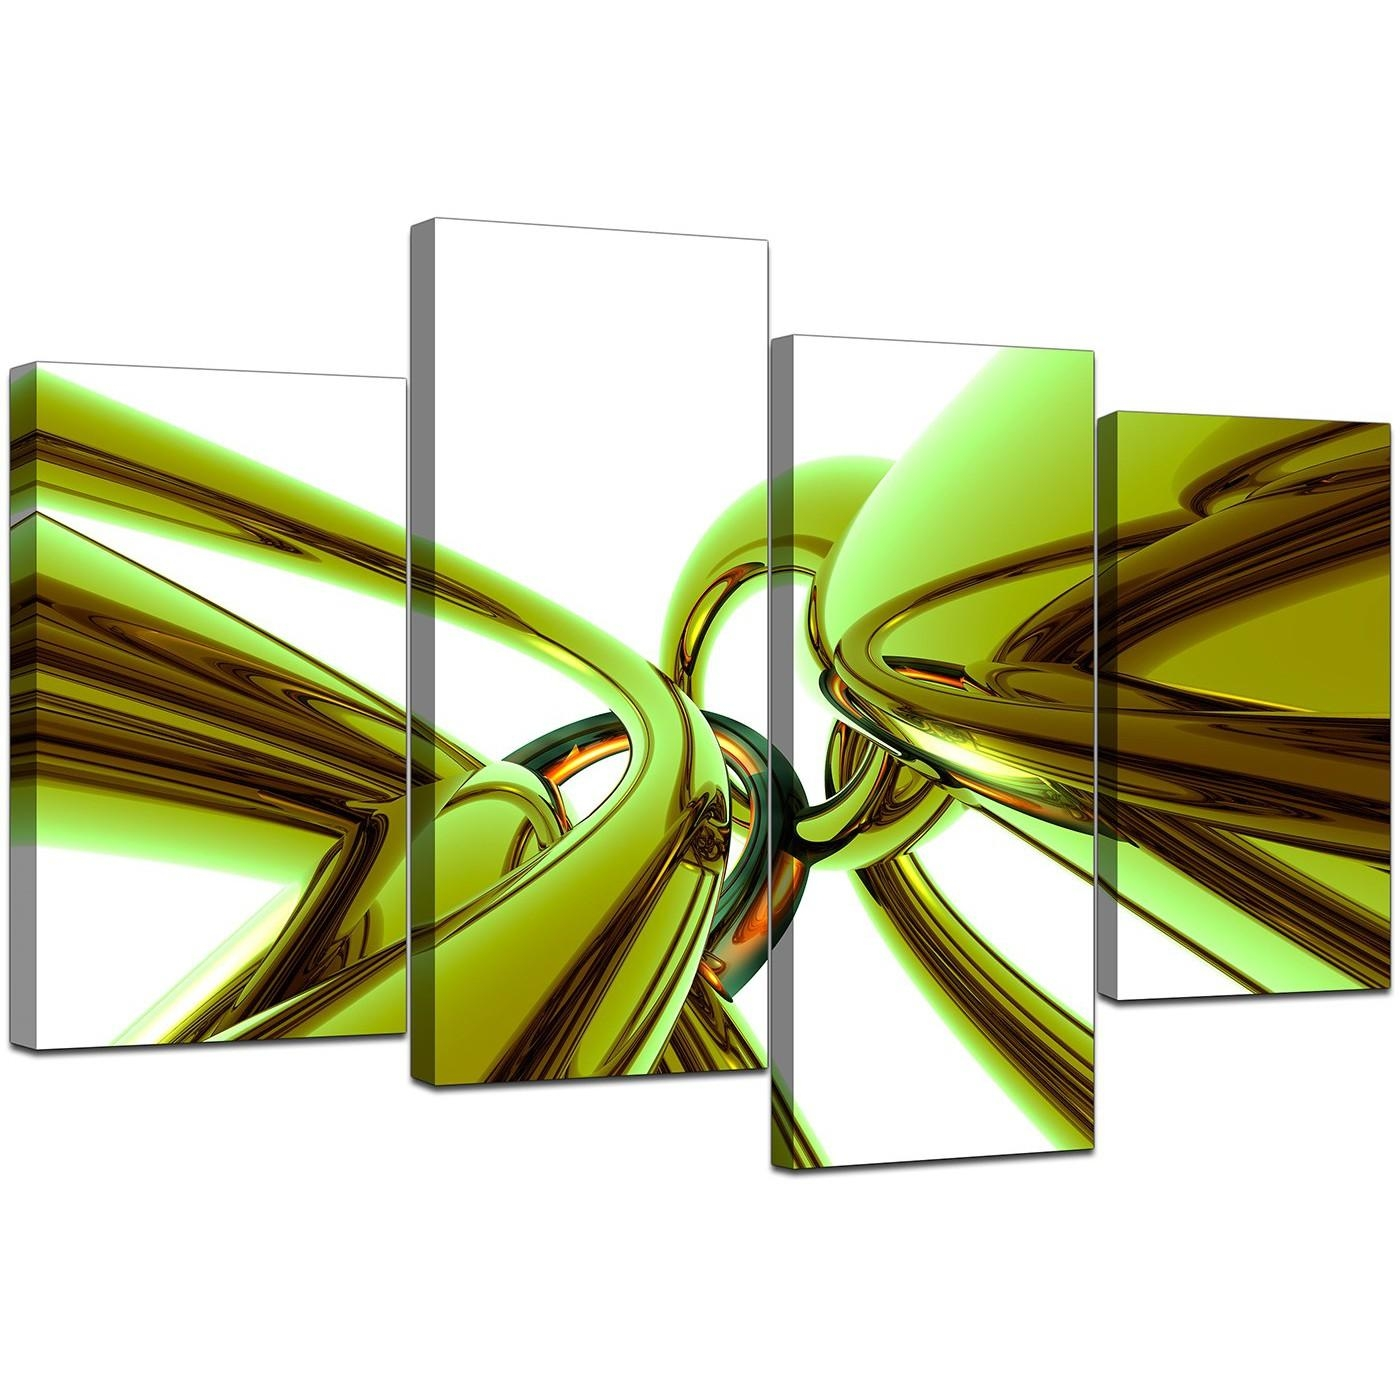 Abstract Canvas Wall Art In Green For Your Living Room – Set Of 4 Regarding Green Canvas Wall Art (View 11 of 20)